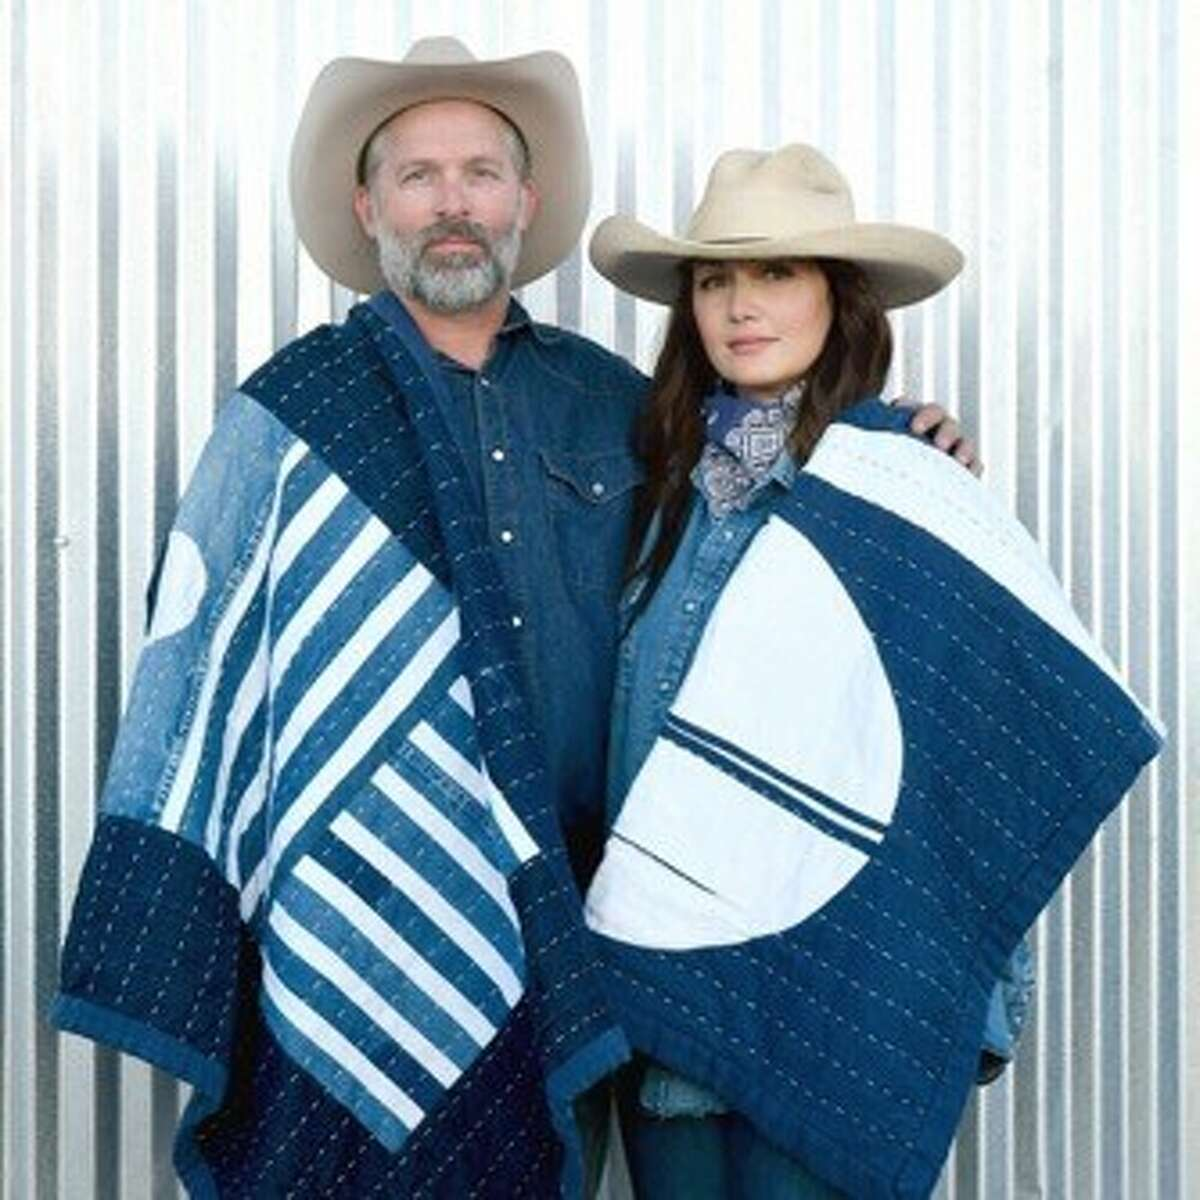 Eric and Jennie Herm are wrapped in denim blankets made from the cotton that is grown on their farm near Ackerly. The business currently is online only. The couple will be opening a shop in Marfa and have plans for shops in Houston and Santa Fe, N.M.